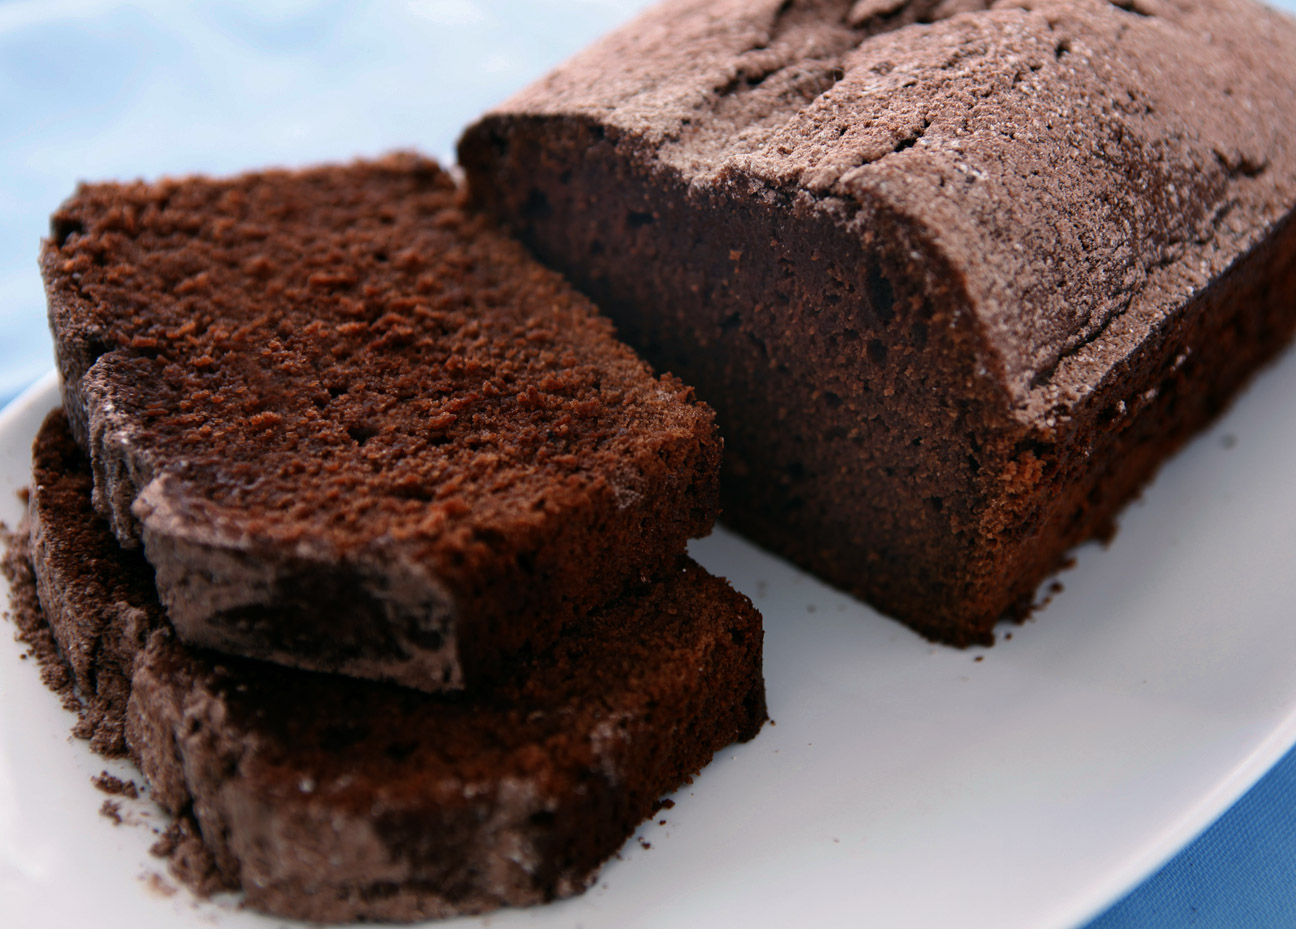 Confessions of a Bake-aholic: Chocolate Pound Cake and an ...